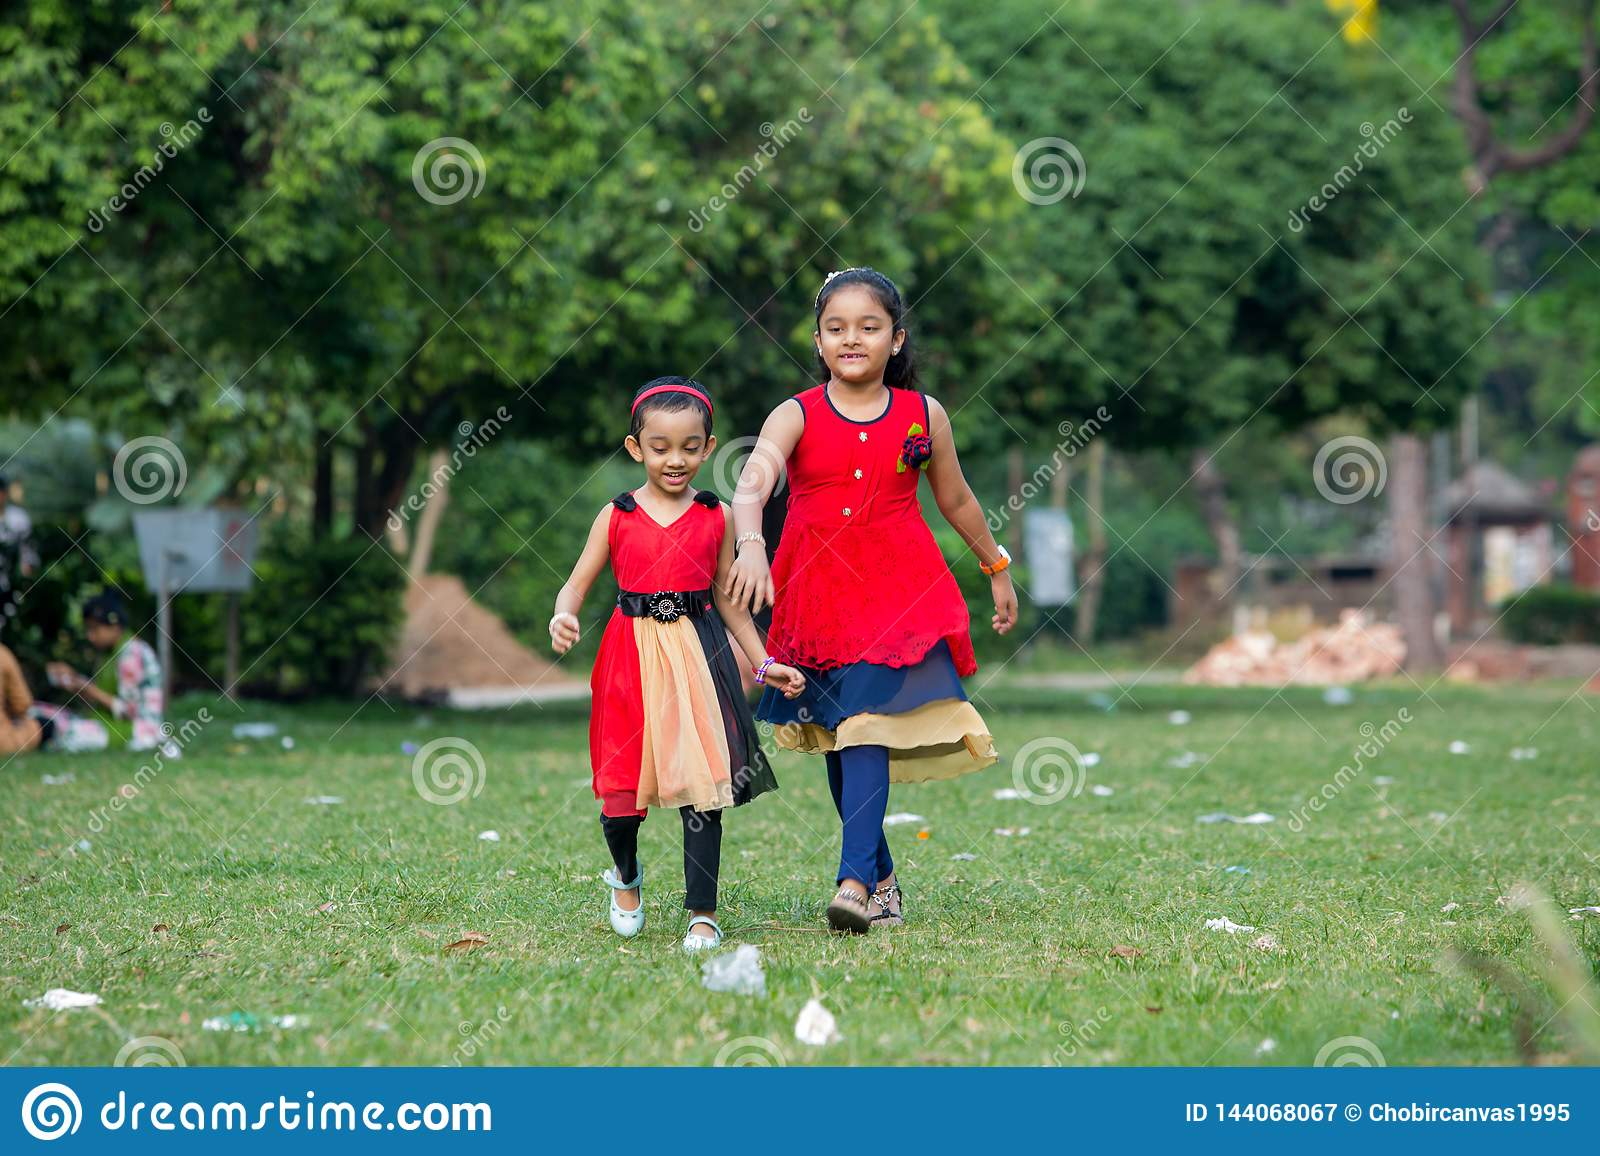 Two sister play with red dress in ground